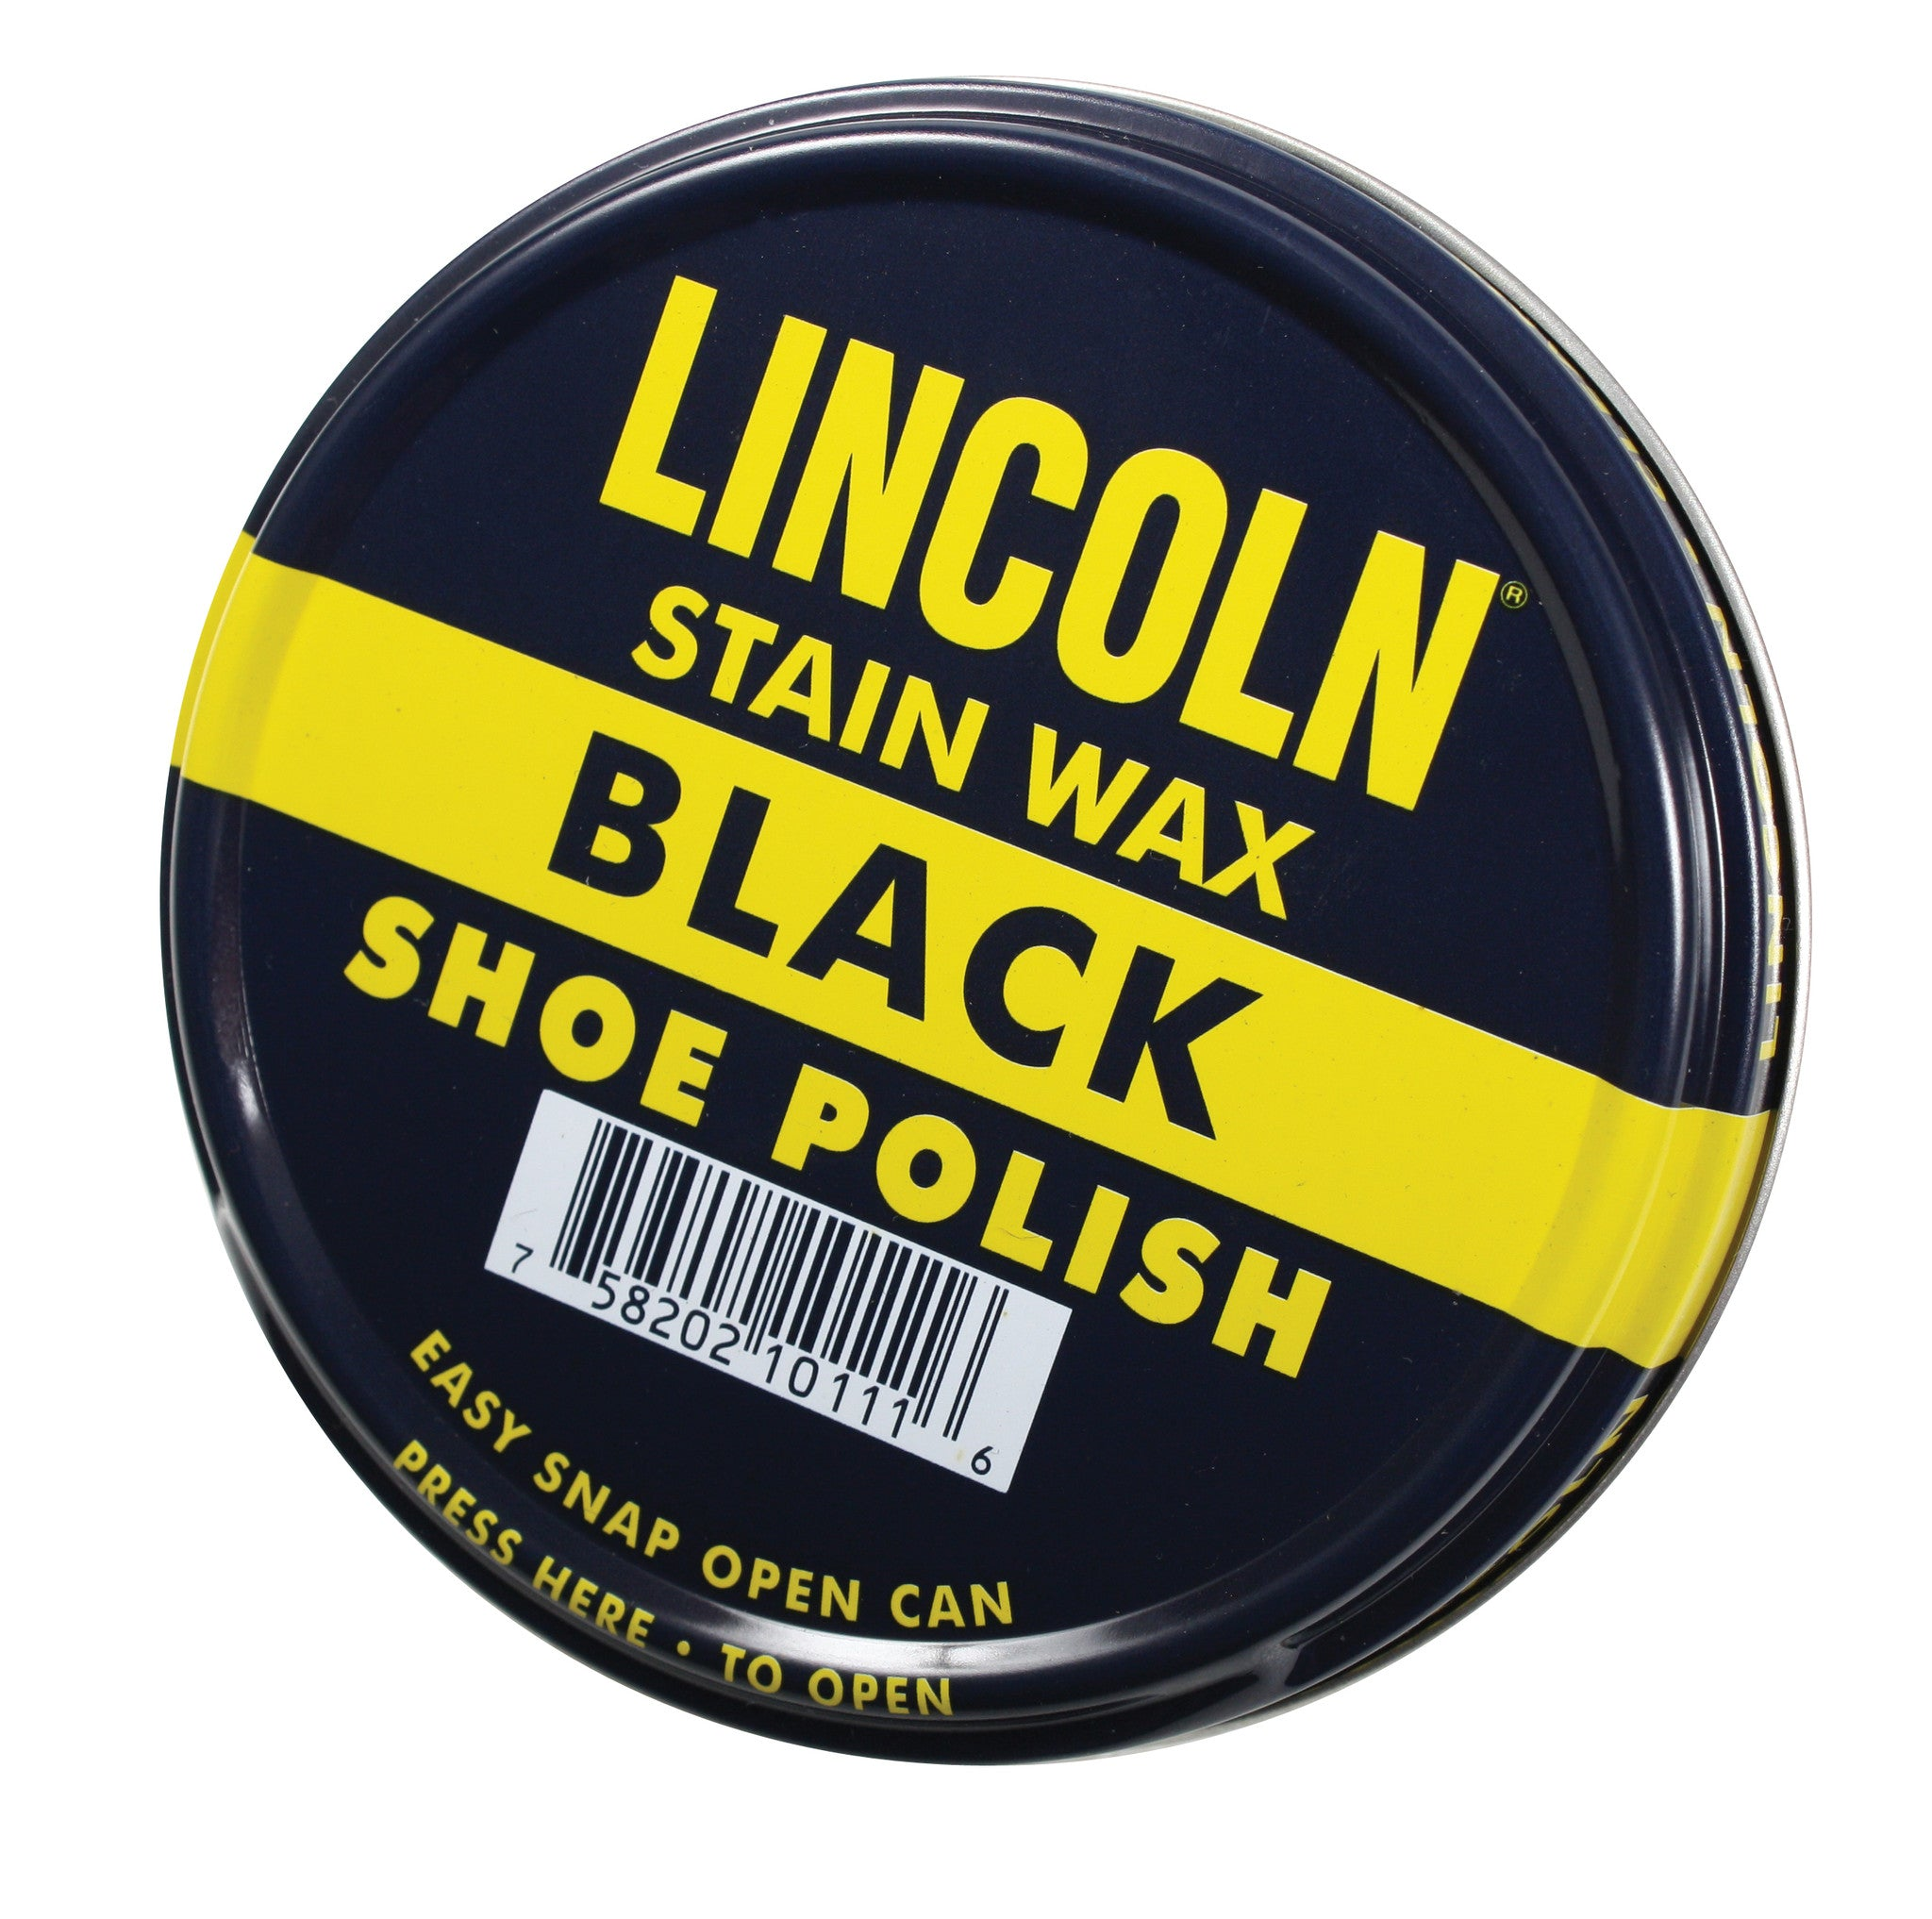 exquisite style sale various styles Lincoln U.S.M.C. Black Stain Wax Shoe Polish – Delta Survivalist